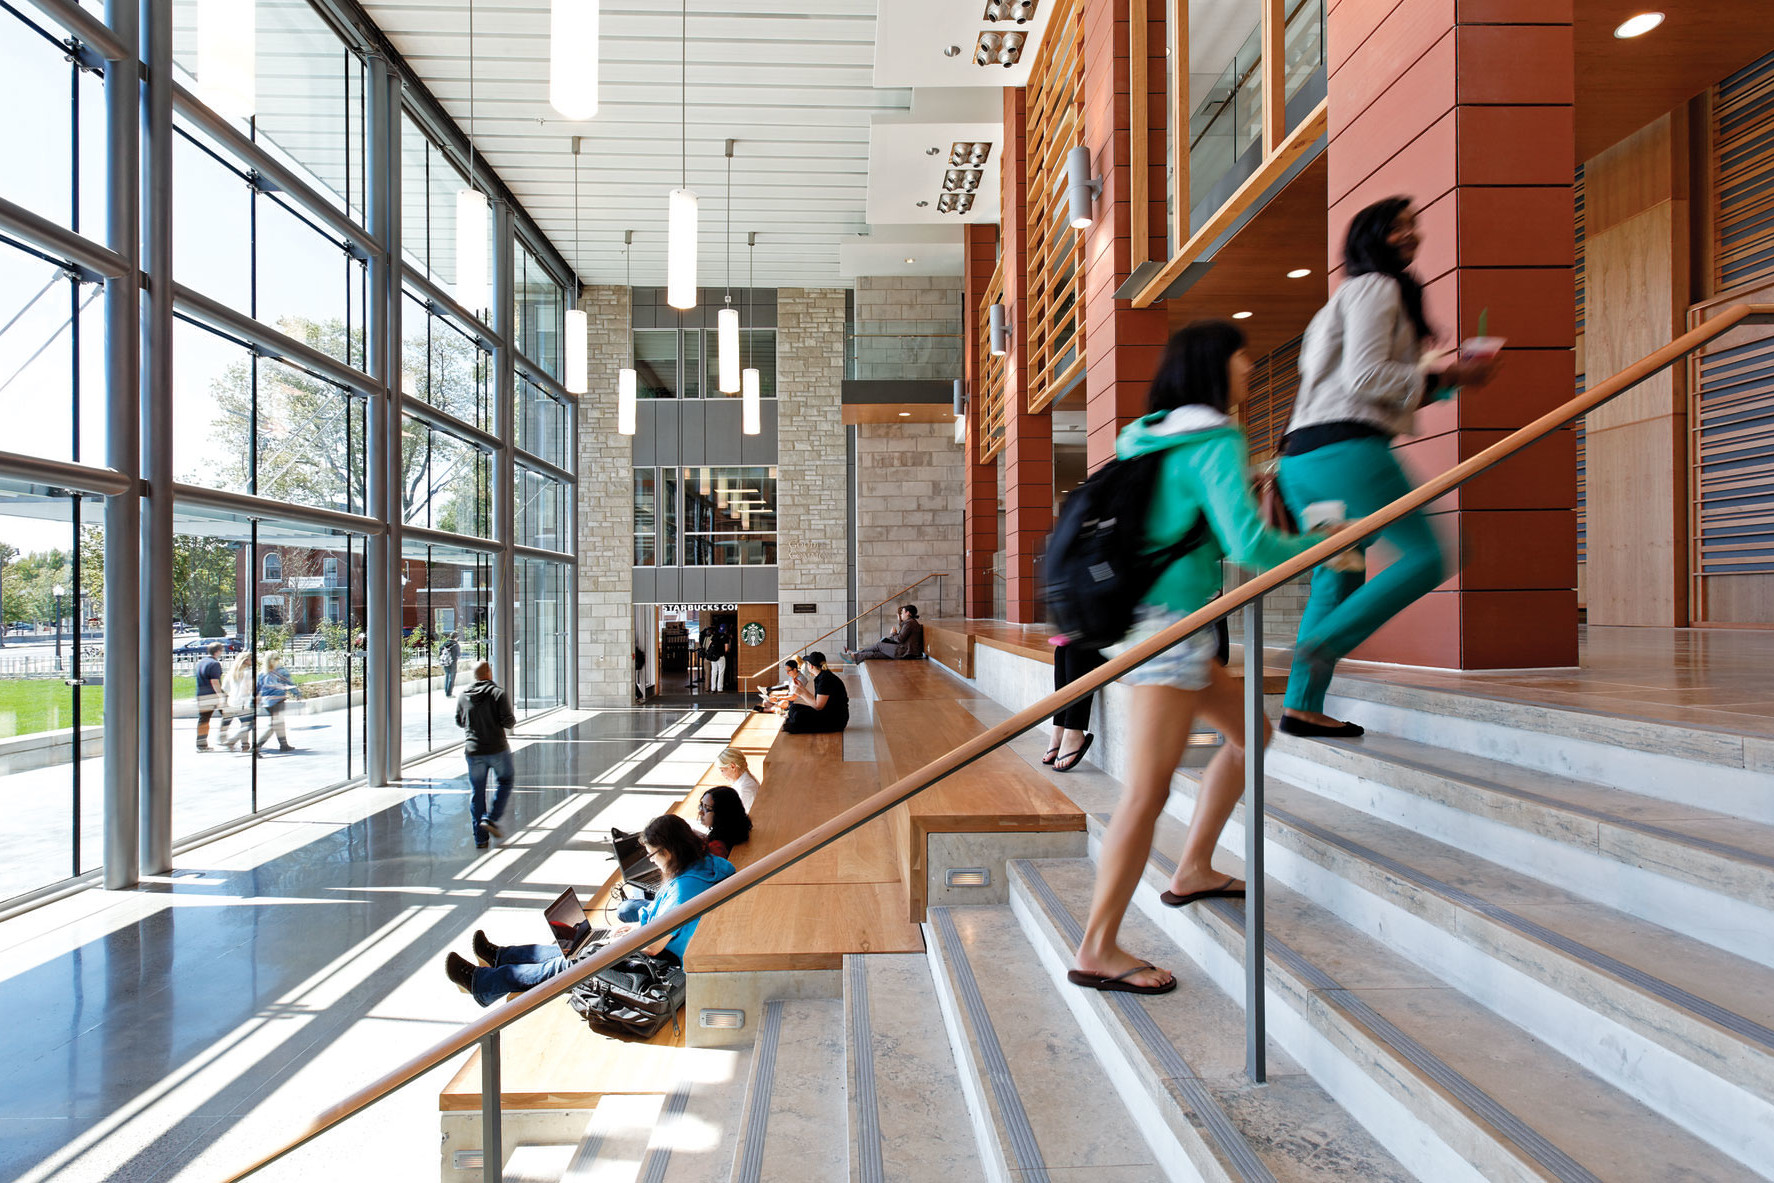 Students walking up steps adjacent to large wooden step lounge area with glass facade on left and Starbucks entrance in background